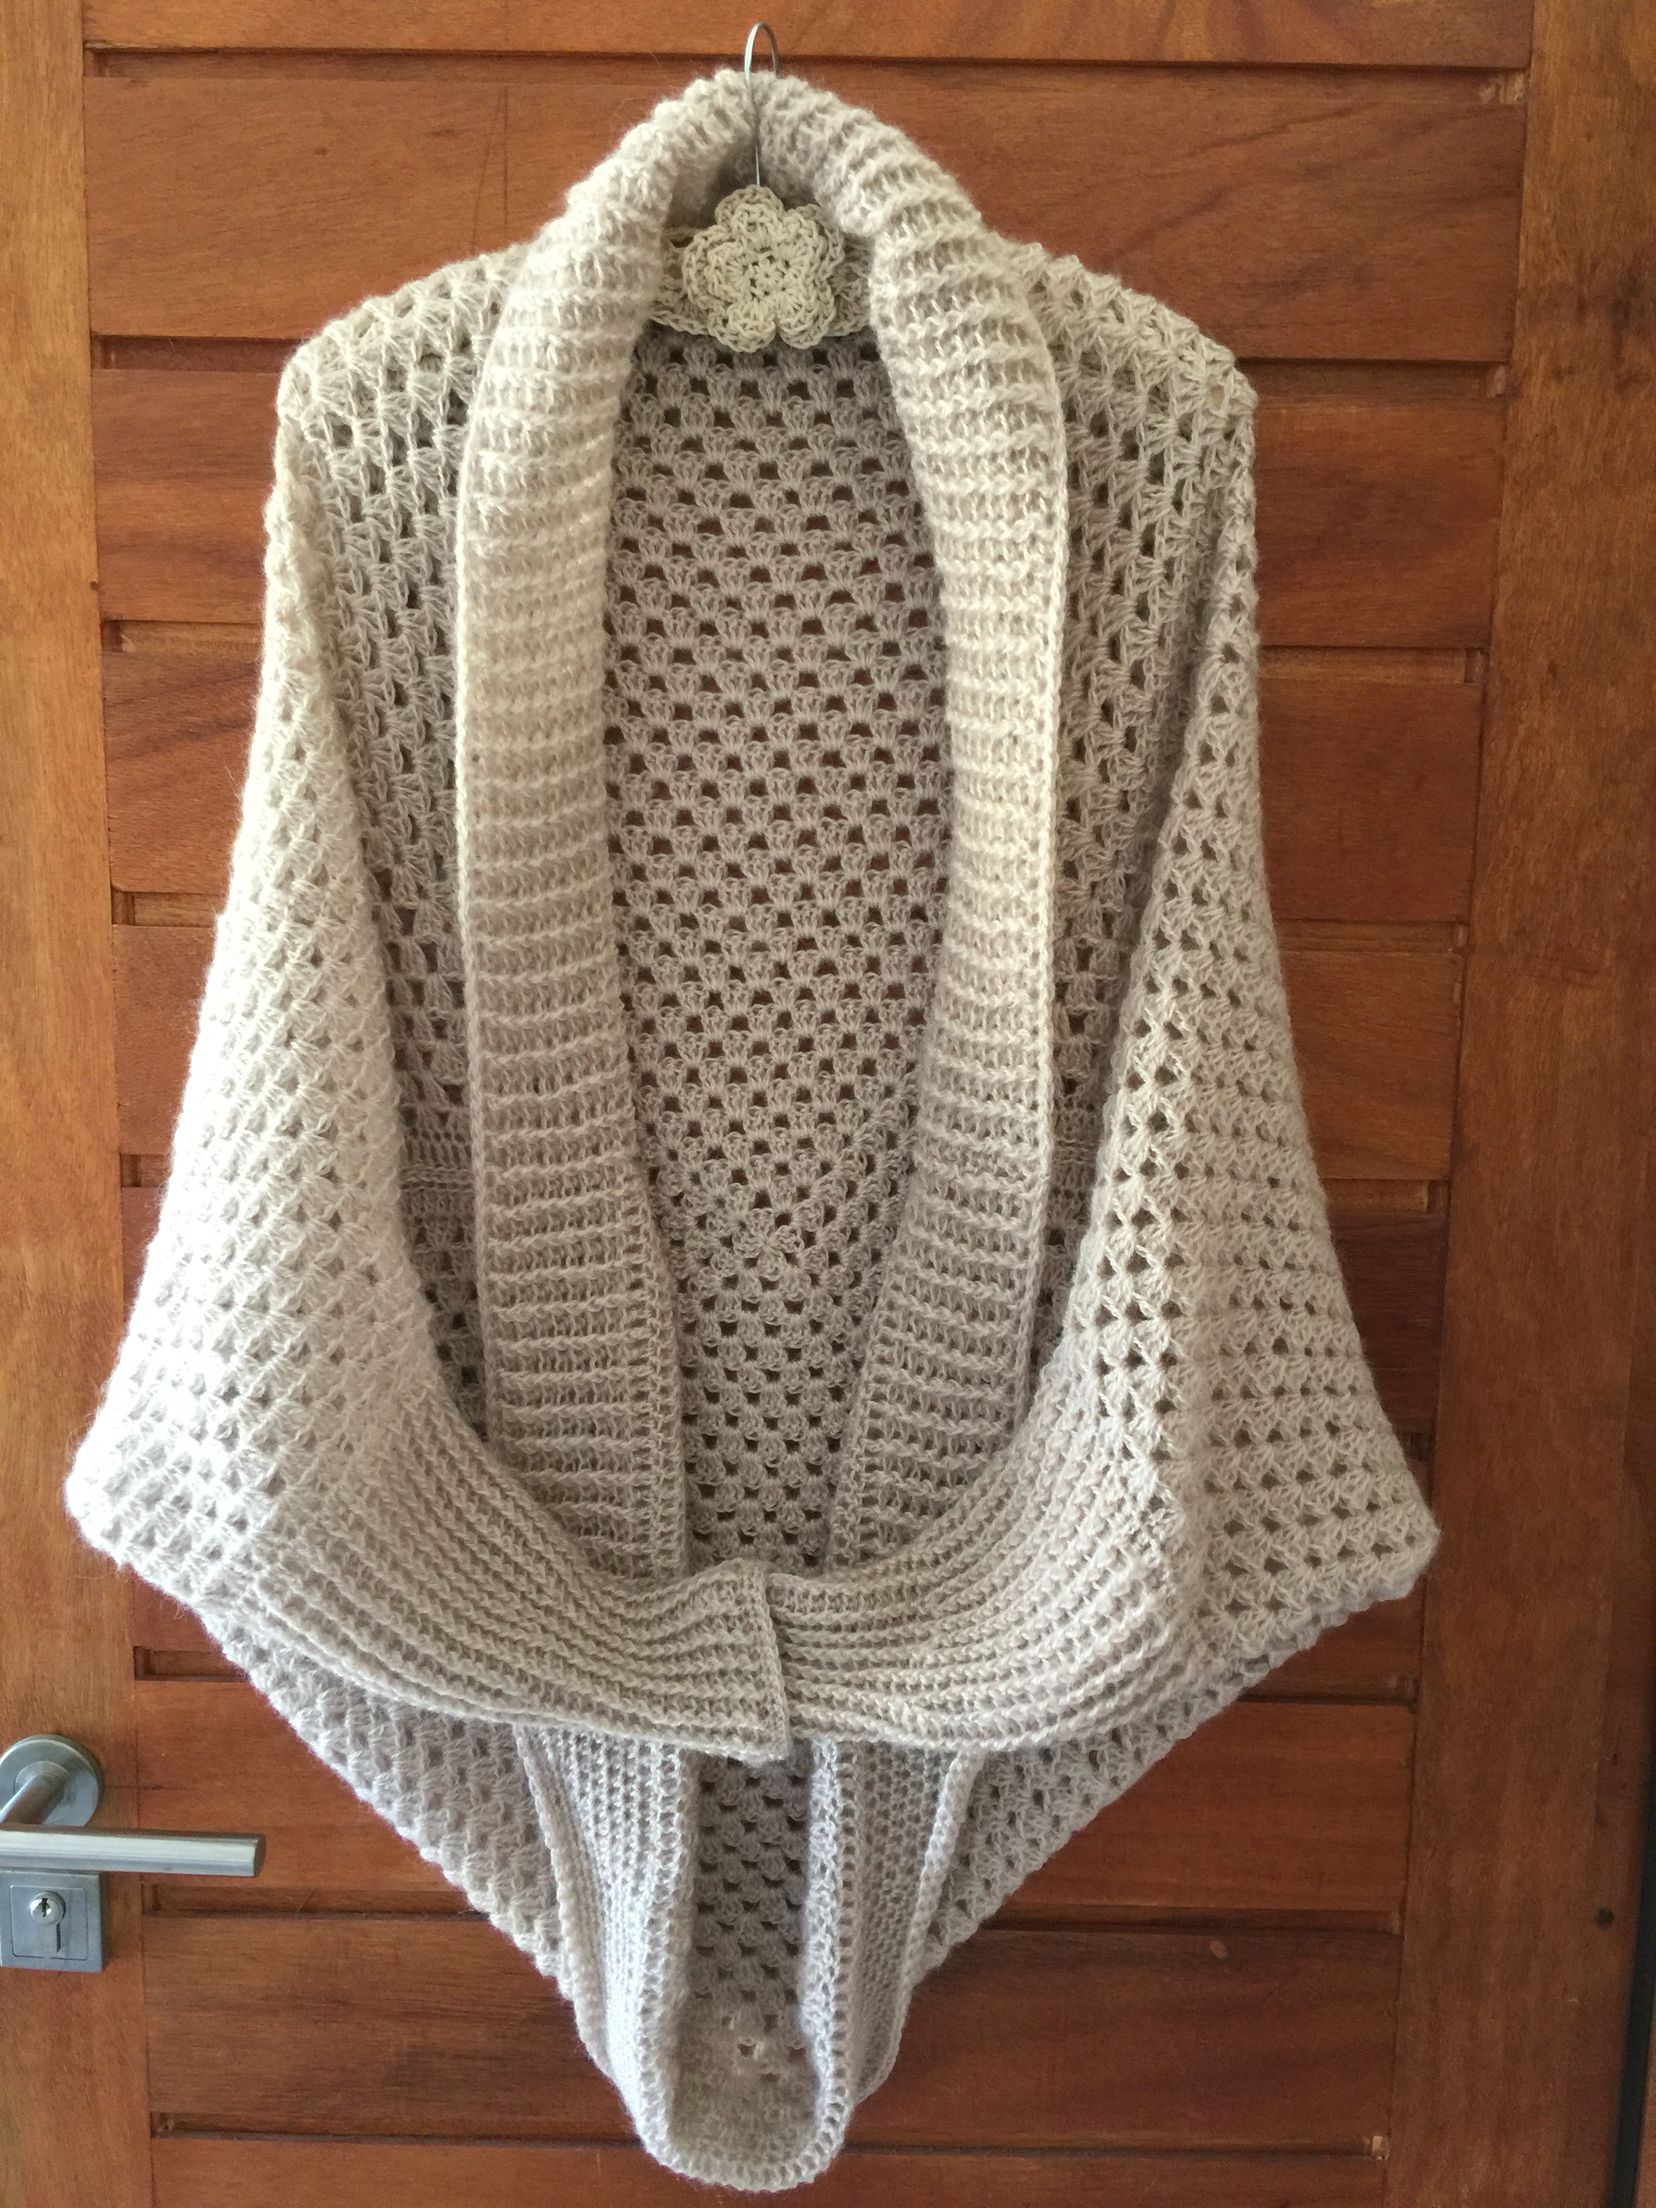 Crochet grannycocoonshrug with long arms pattern httpwww long sleeved crochet granny shrug cocoon find a free pattern on our site bankloansurffo Choice Image